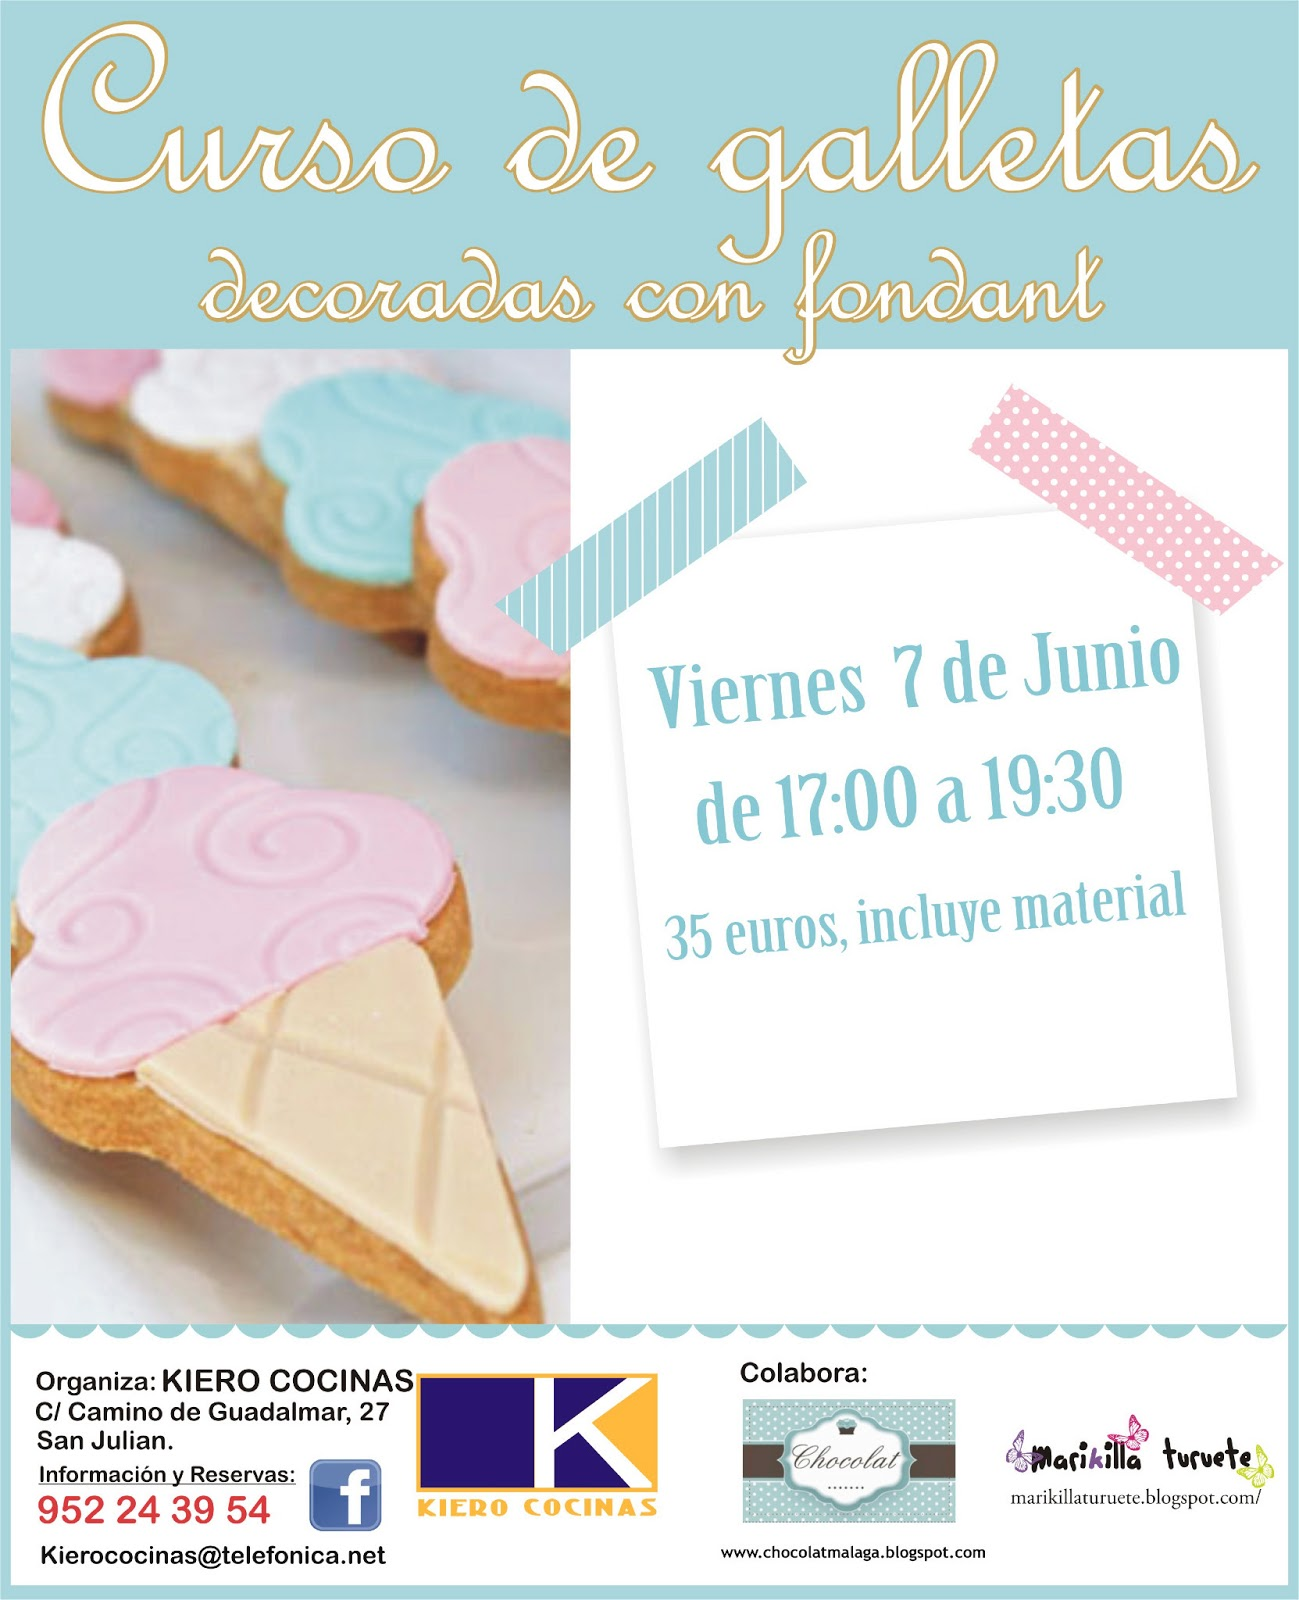 Chocolat malaga curso de galletas decoradas for Cursos de cocina en malaga